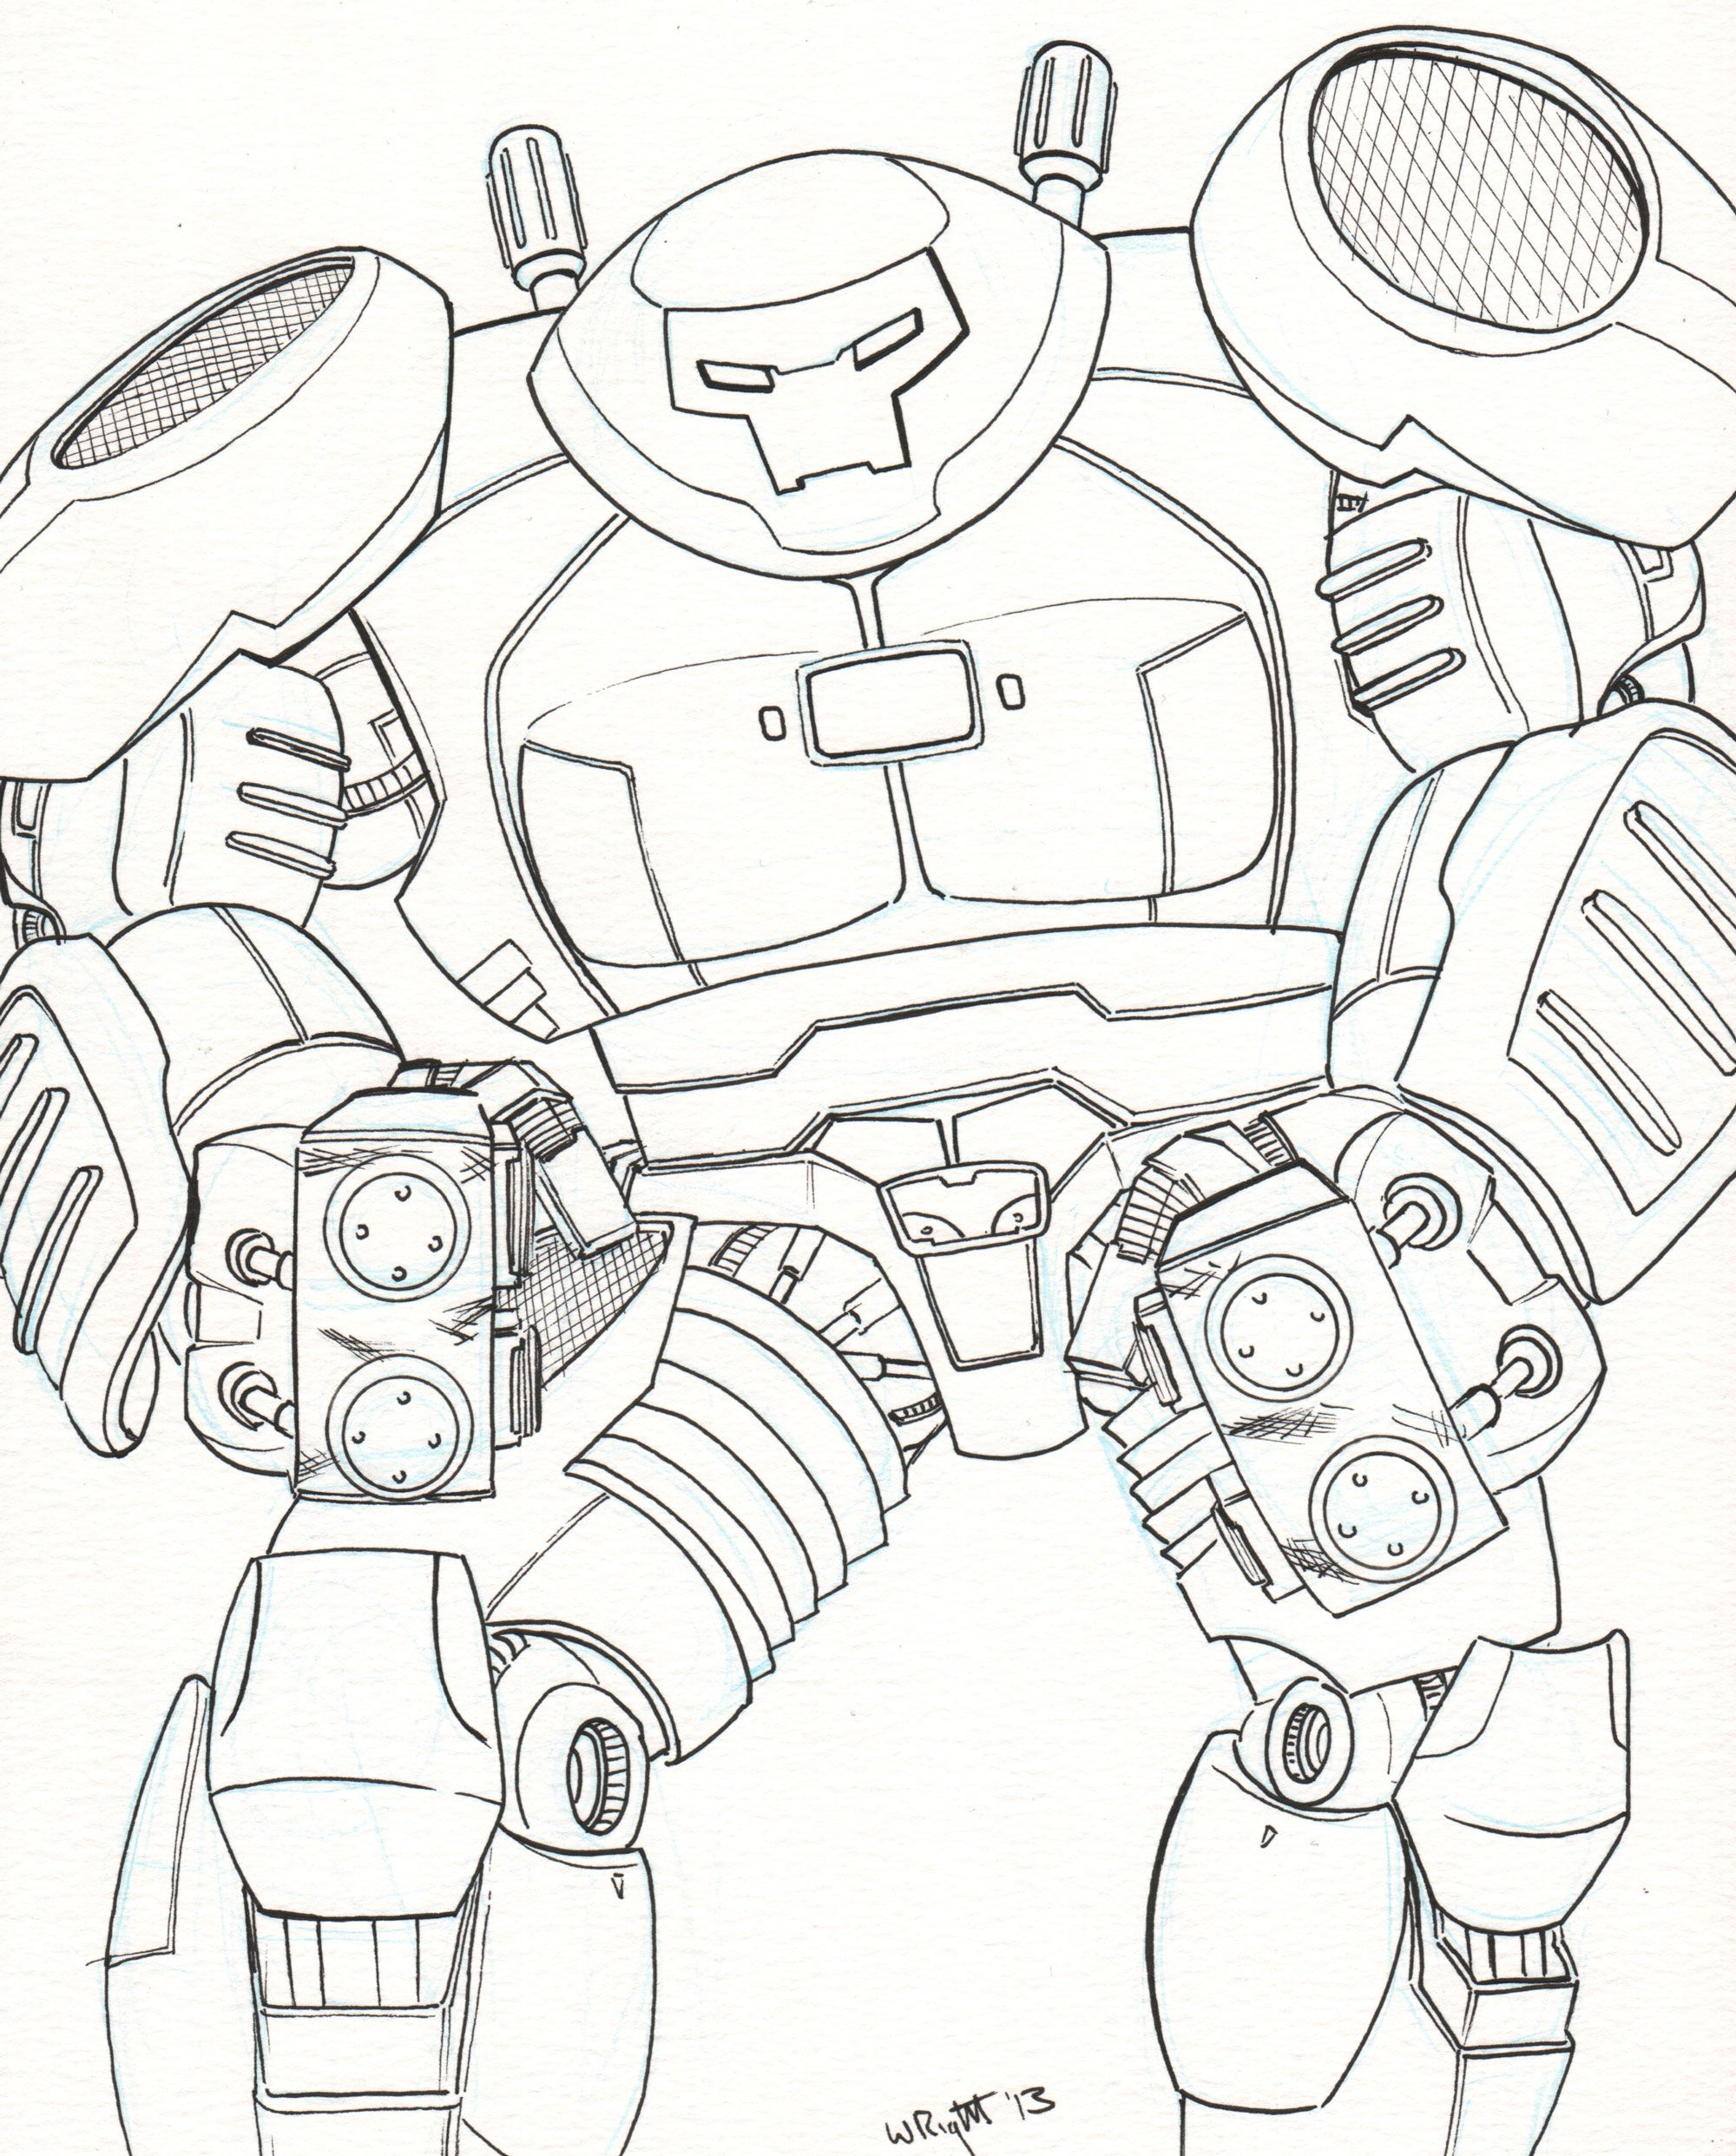 Iron Man Hulkbuster vs Hulk Coloring Pages All About